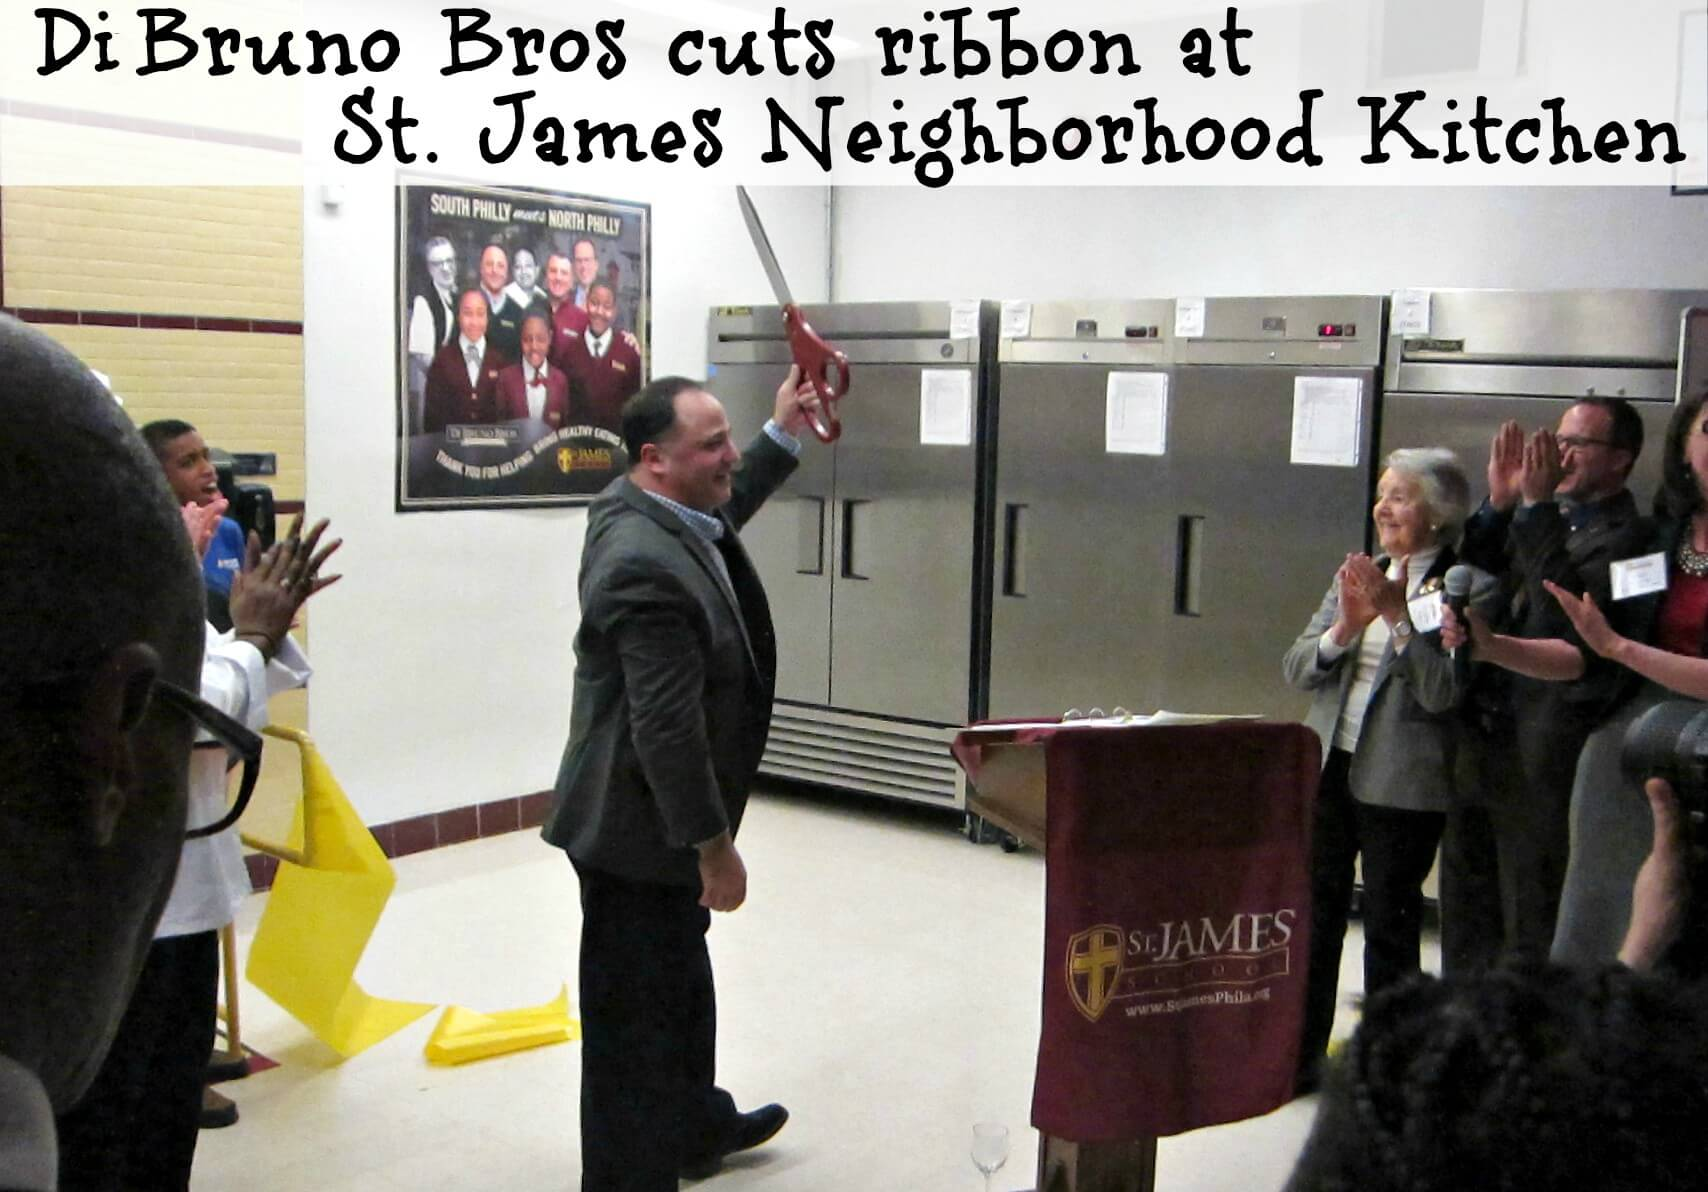 East Falls Local St James Neighborhood Kitchen 2-11 Bill Magnucci cousin of DiBruno cuts ribbon